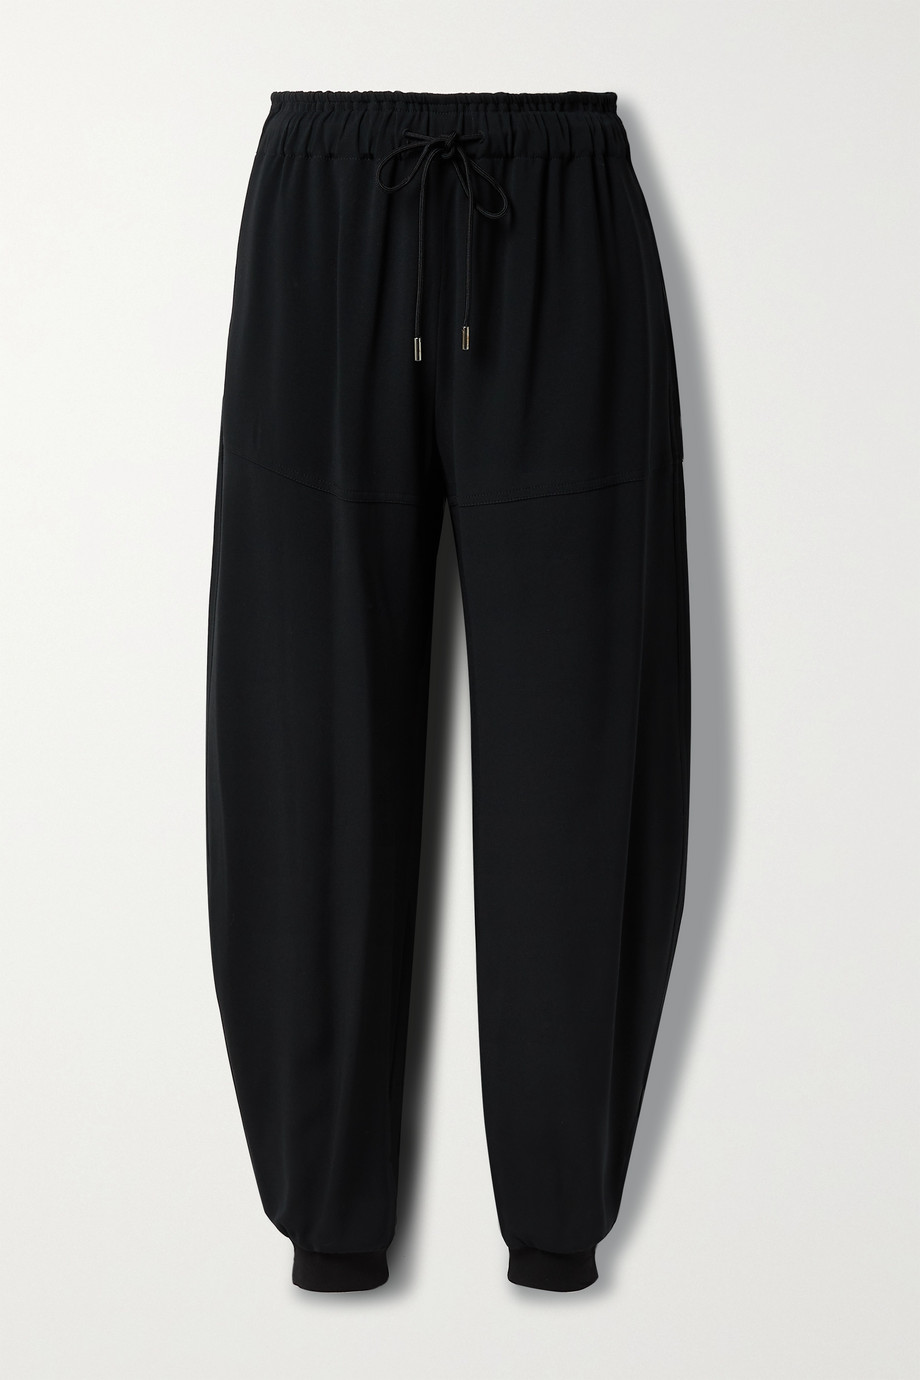 Chloé Crepe tapered pants